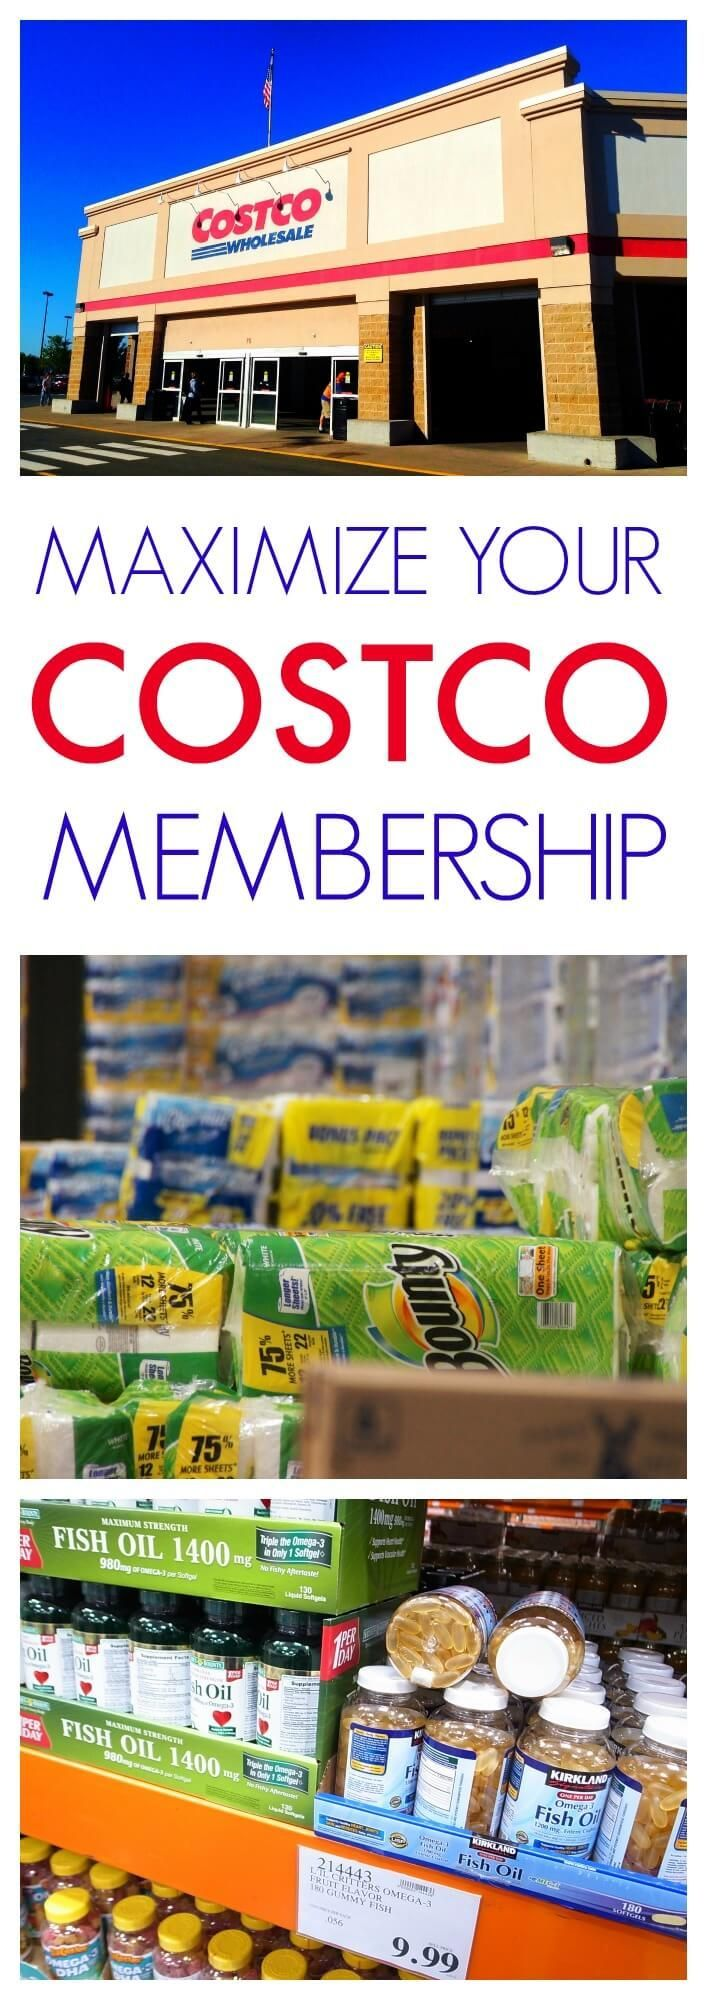 Maximize your Costco membership! Here are the top things to buy at Costco to Utilize Your Membership!